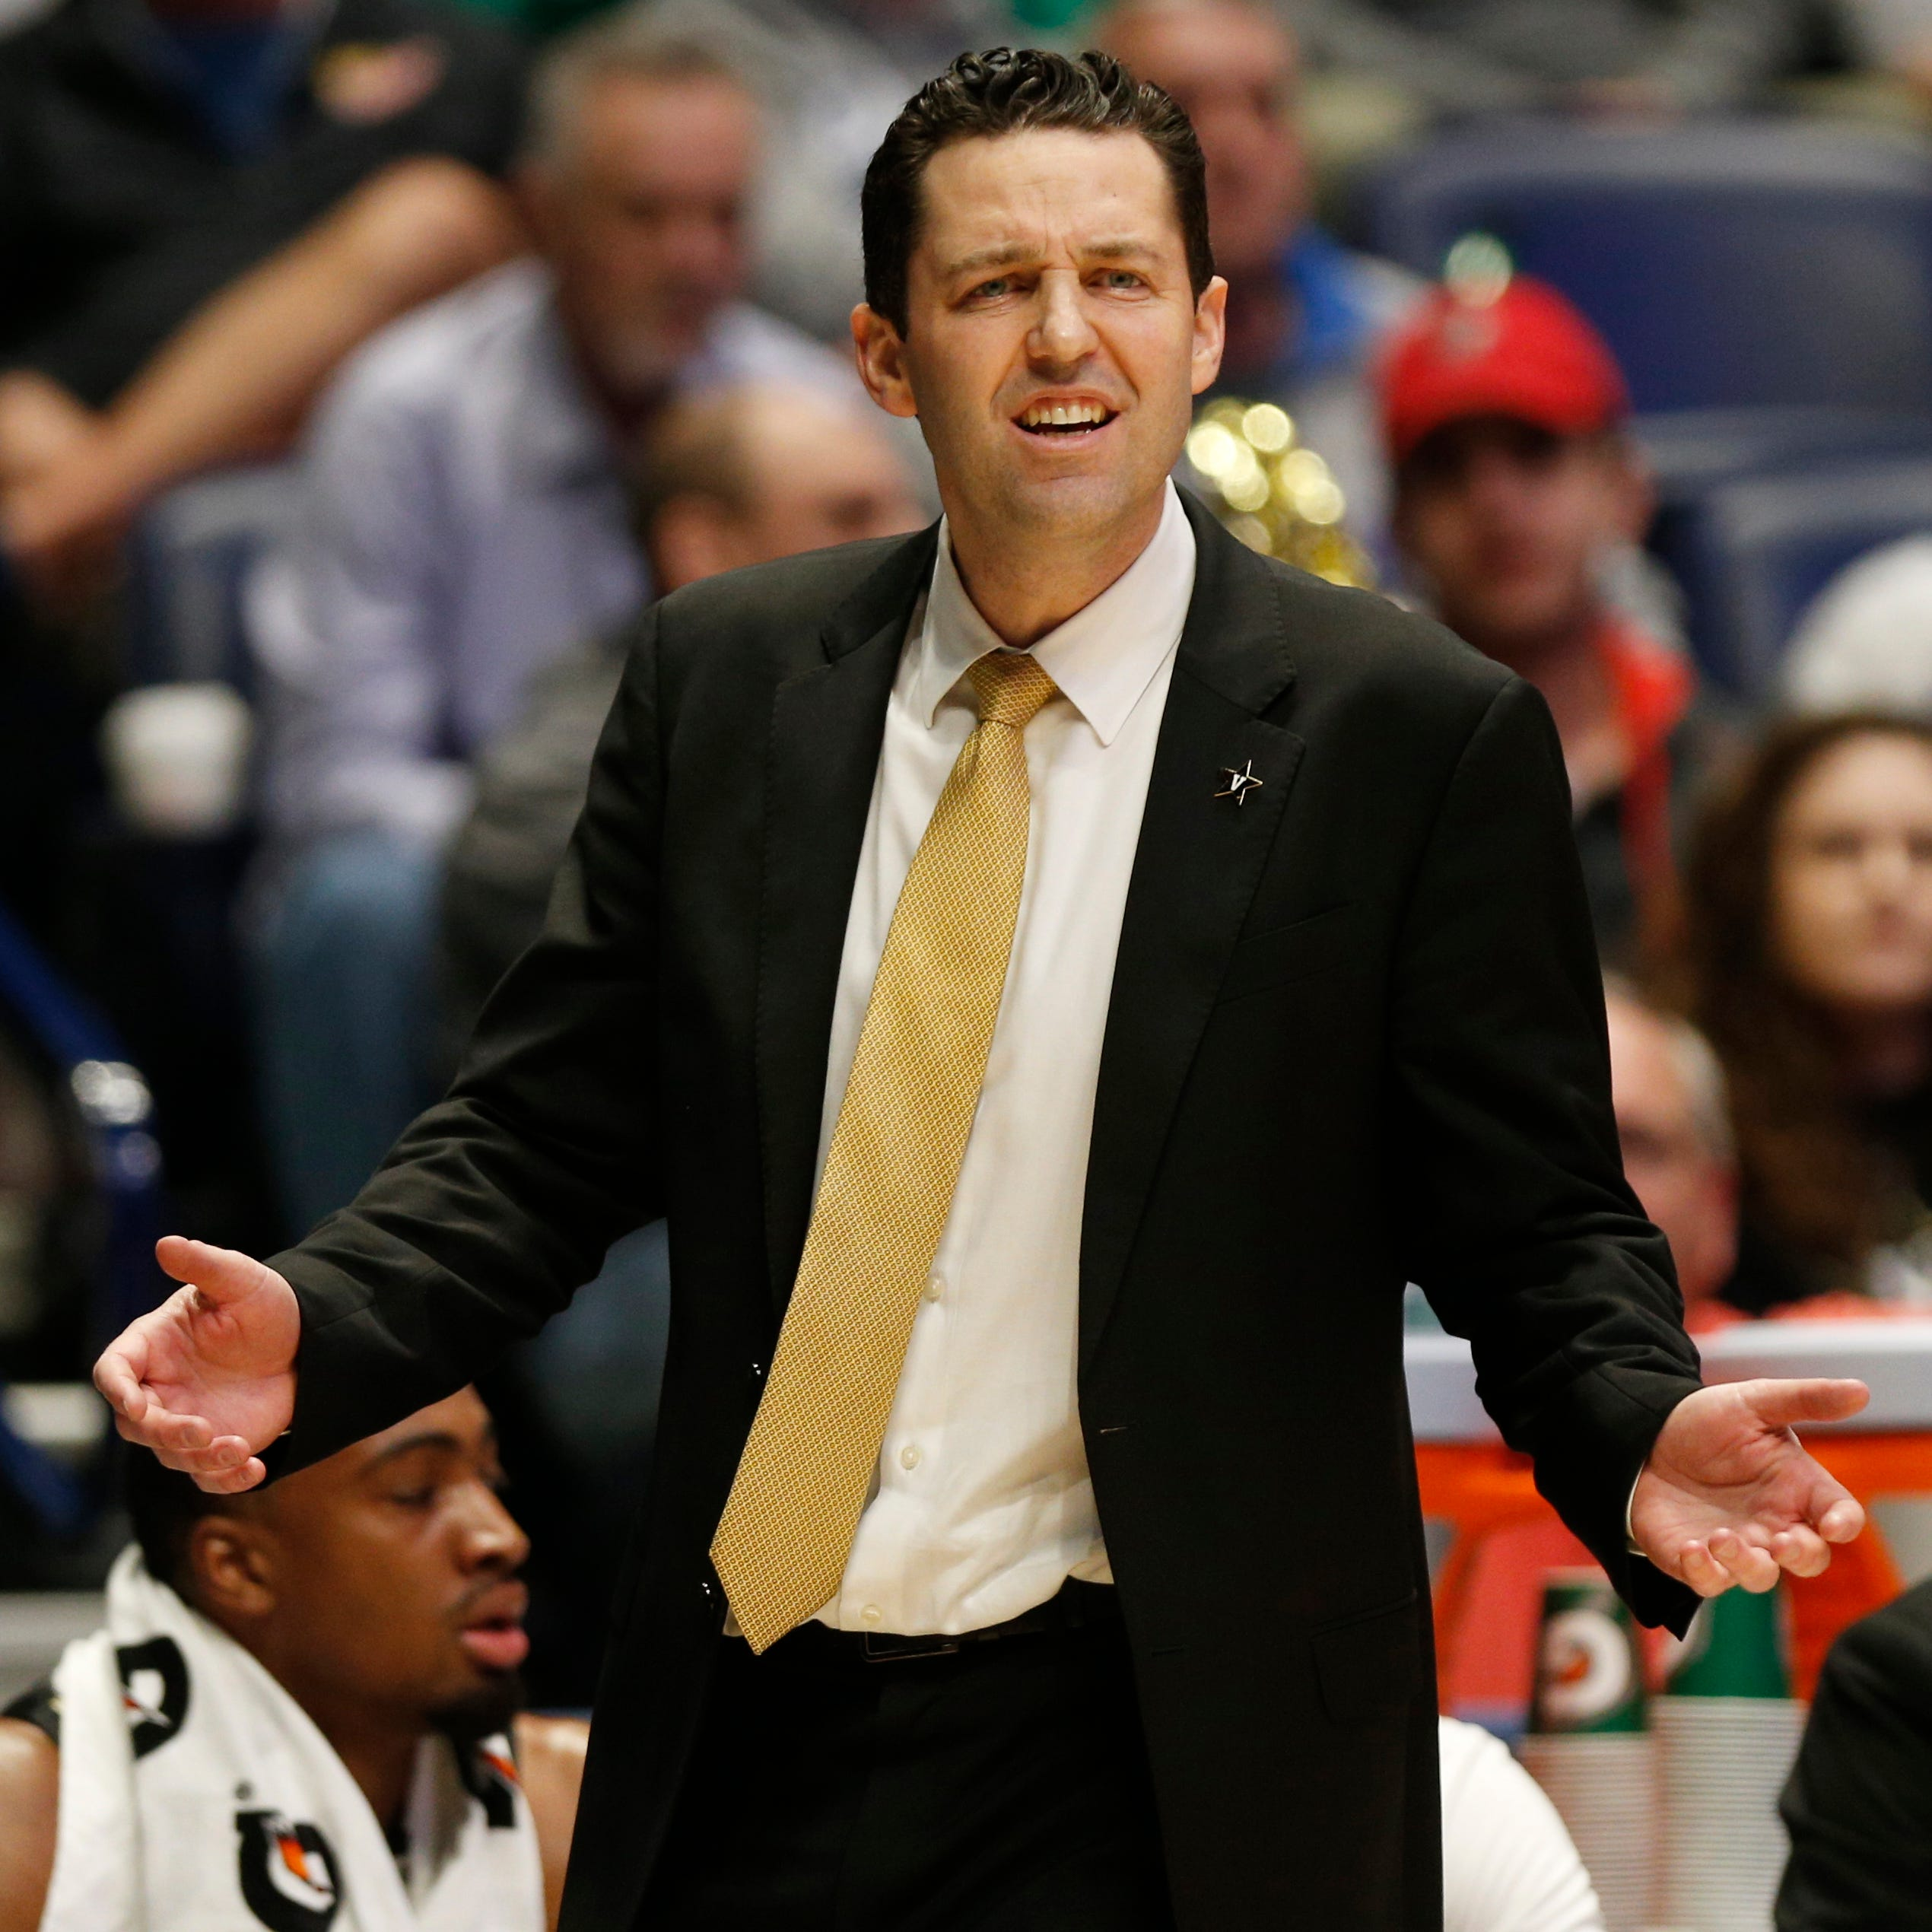 Vanderbilt paid Bryce Drew $2 million one year before 20-game losing streak began